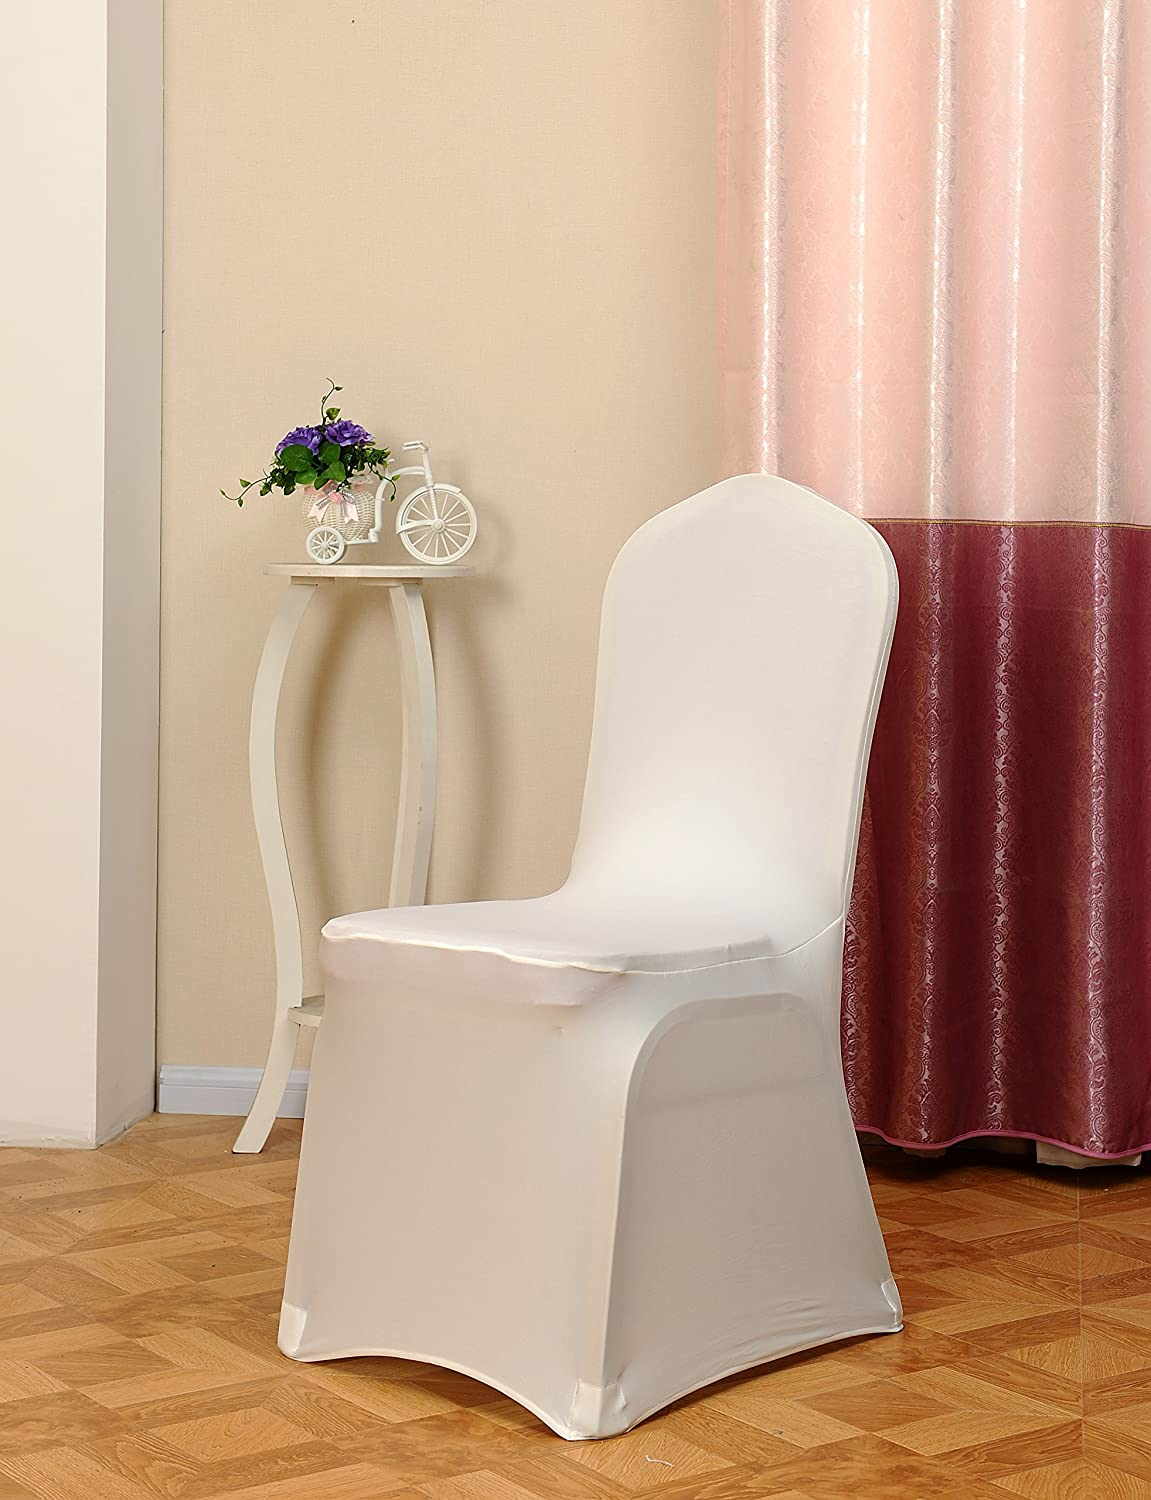 Usual Joy - Funda para silla, ideal para decorar sillas en ...